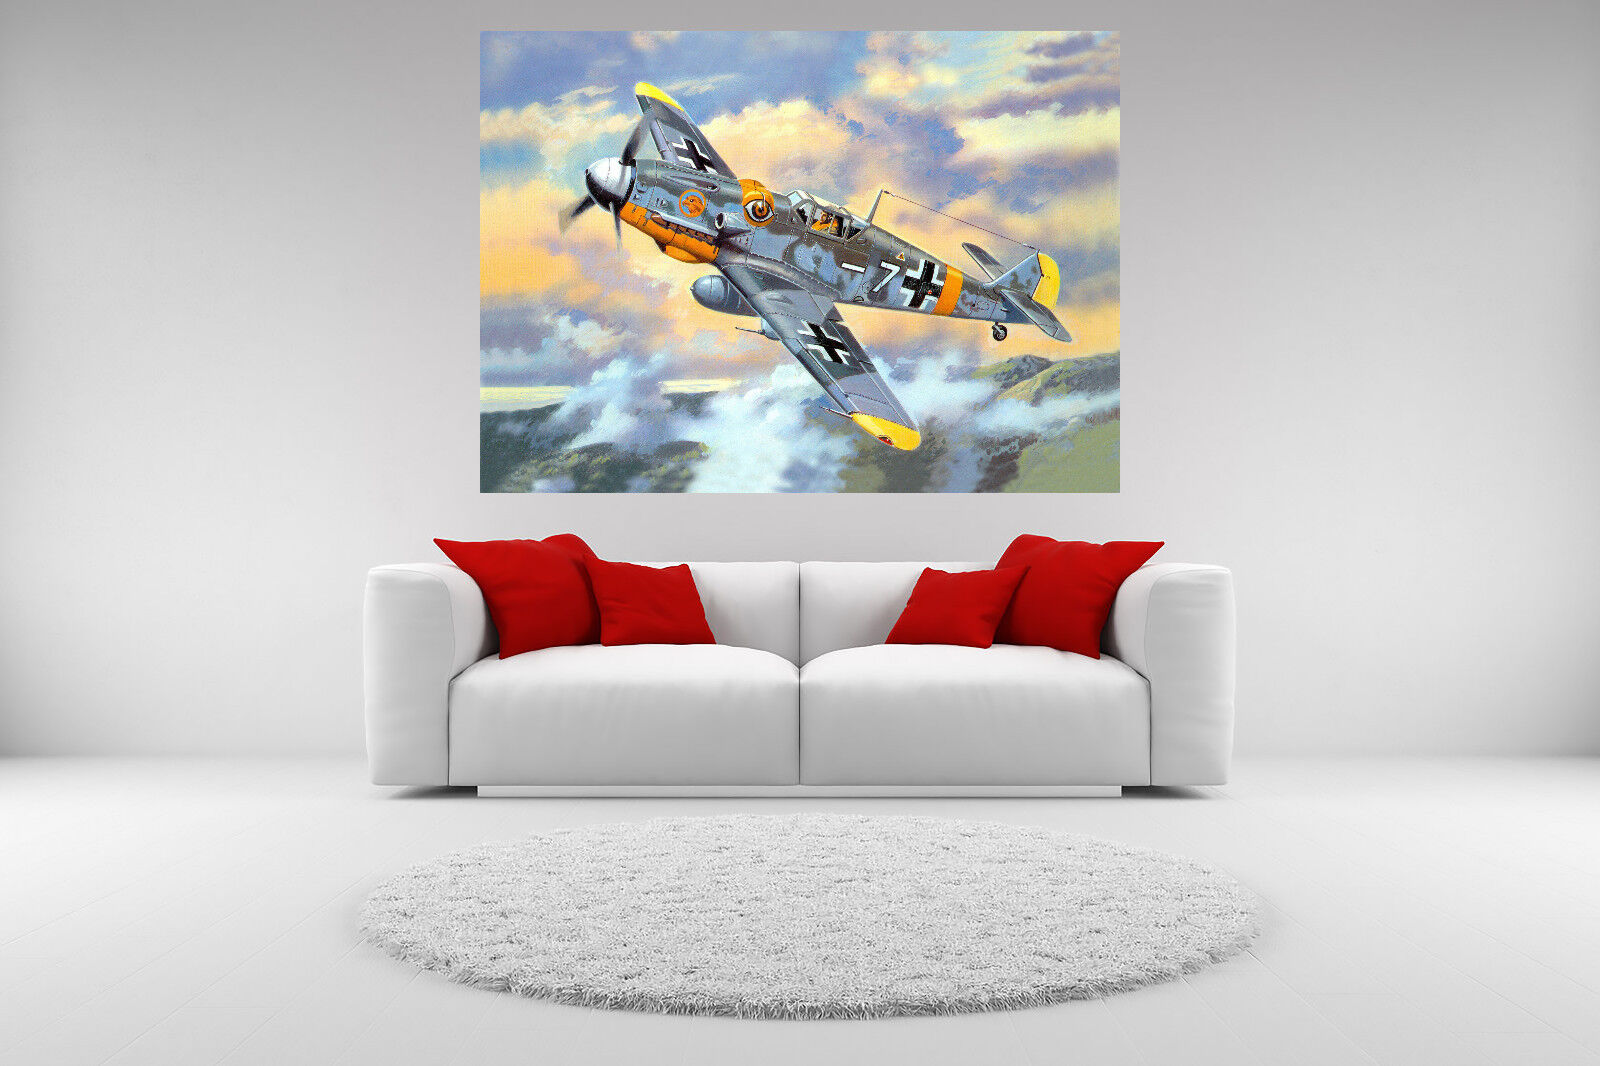 Bf 109 Fighter Jet Canvas Giclee Print Picture Unframed Home Decor Wall Art